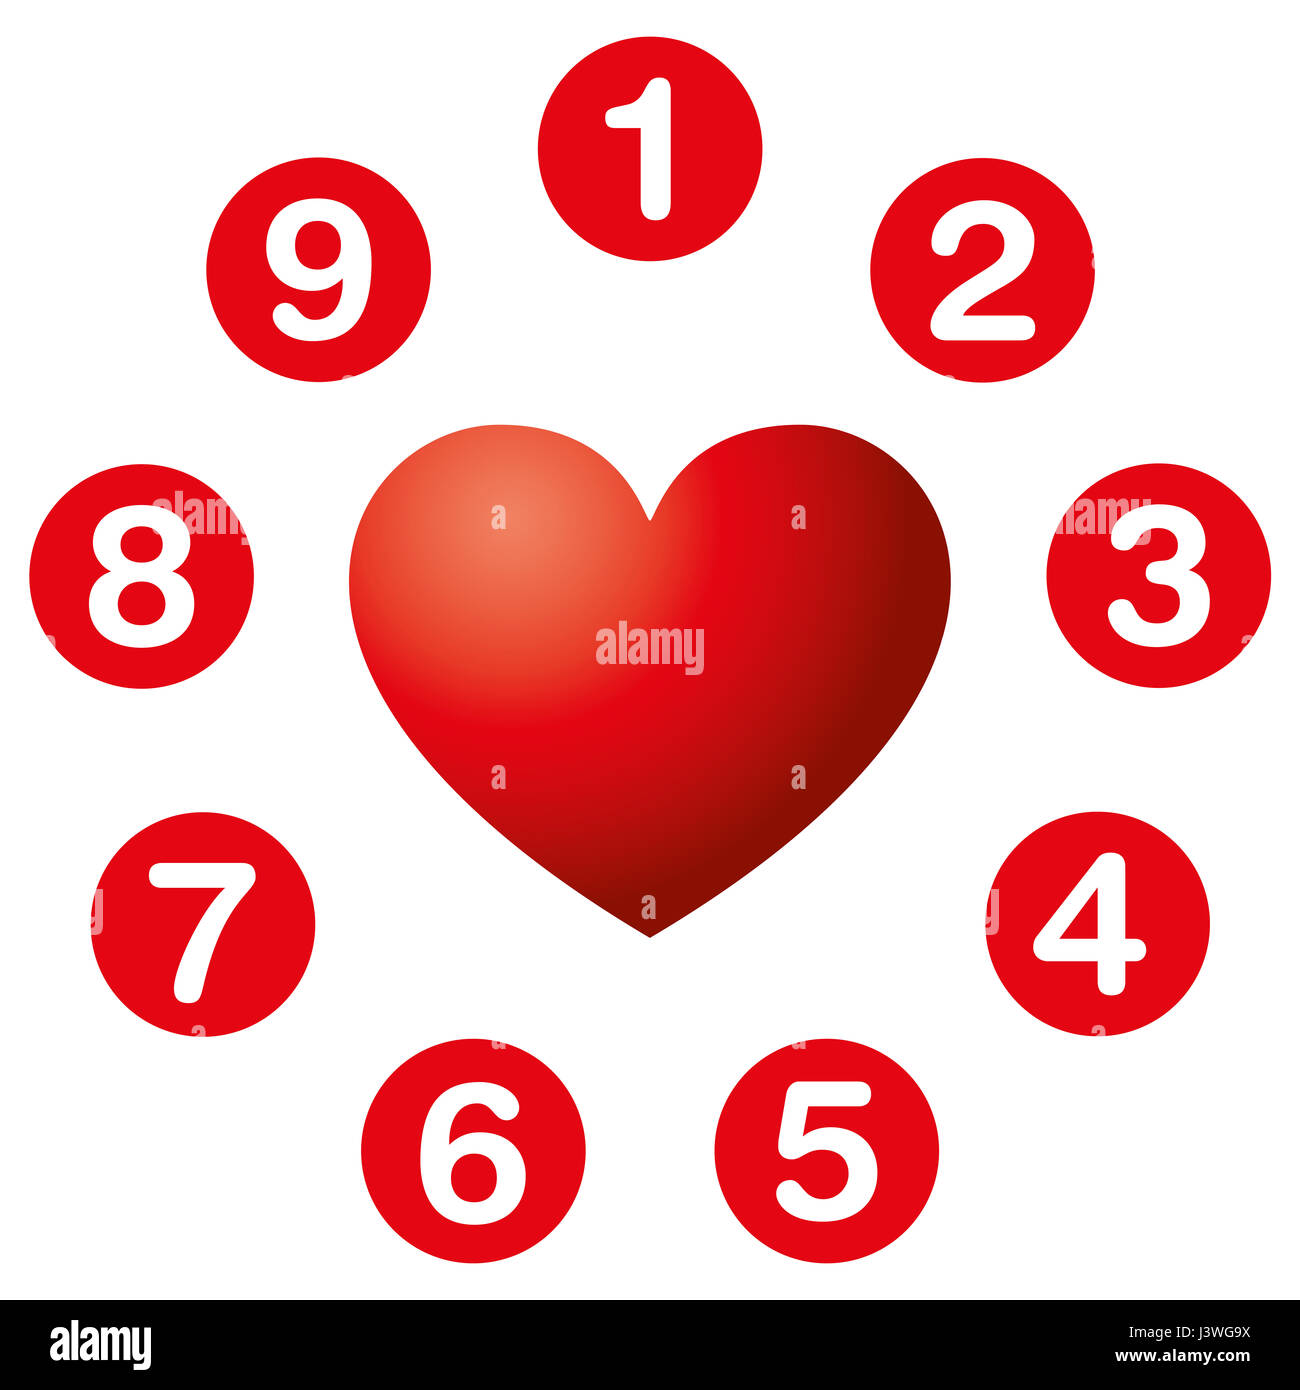 Hearts desire numbers circle numerology soul urge numbers in hearts desire numbers circle numerology soul urge numbers in red circles around a heart symbol the numbers reveal what we want more what us drive buycottarizona